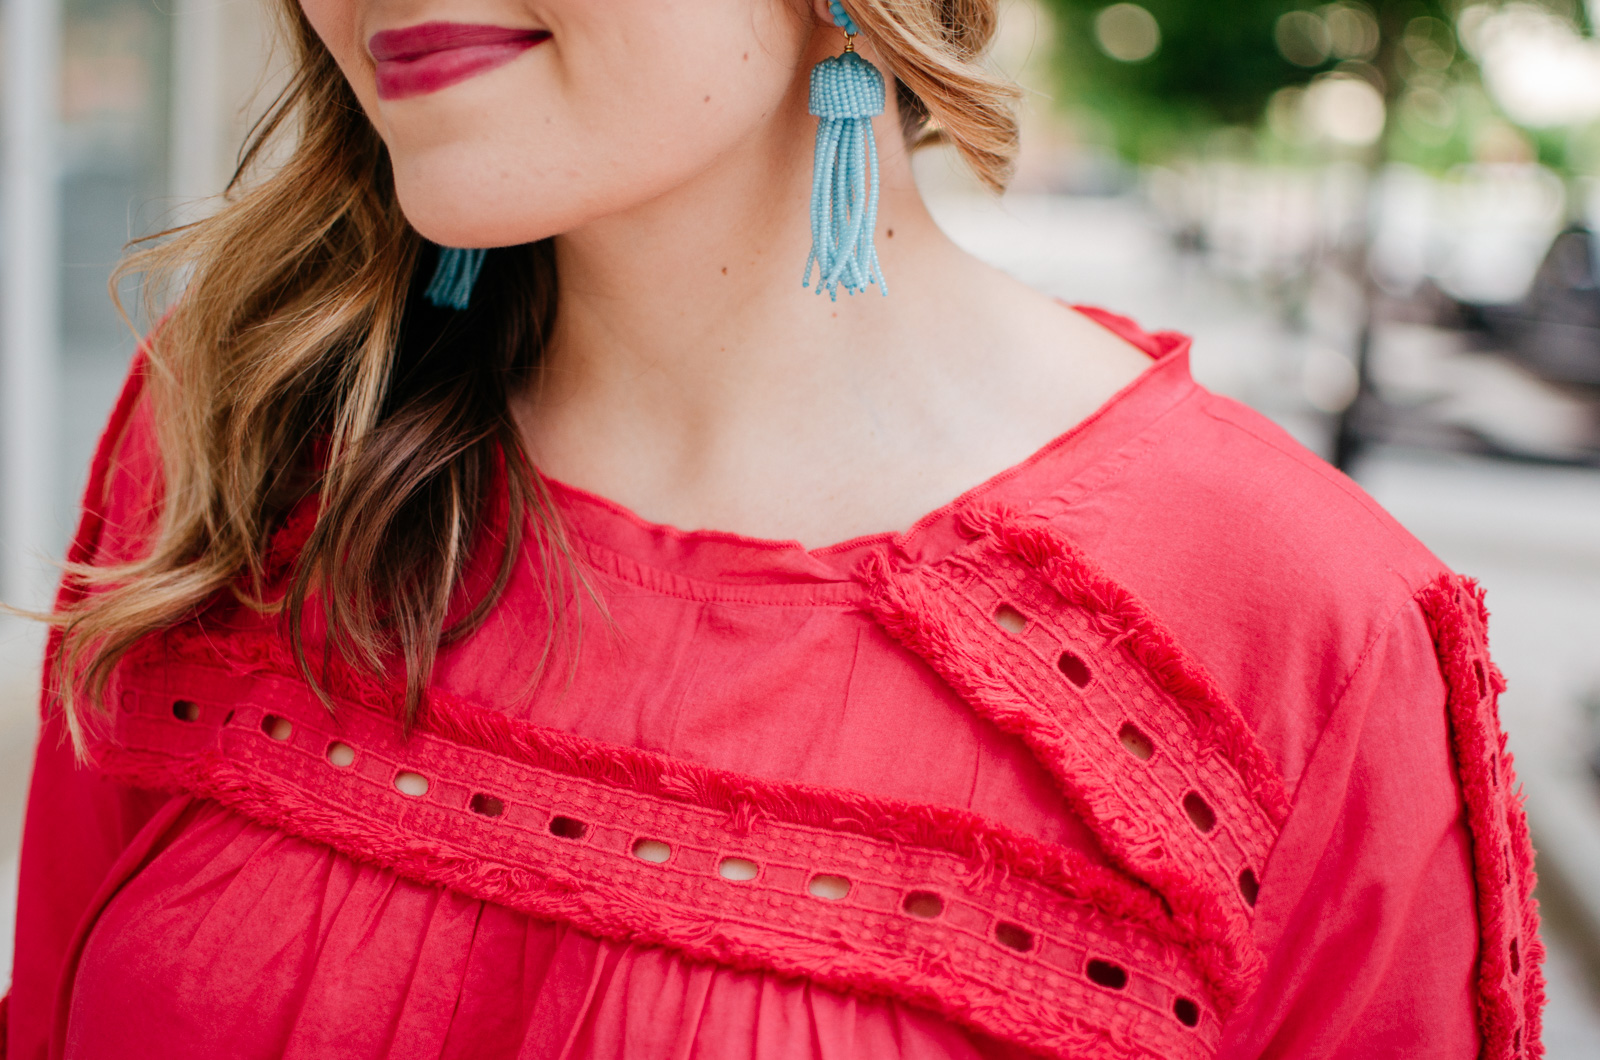 spring style - fringe embellished top | Get more cute spring weekend outfit ideas at bylaurenm.com!